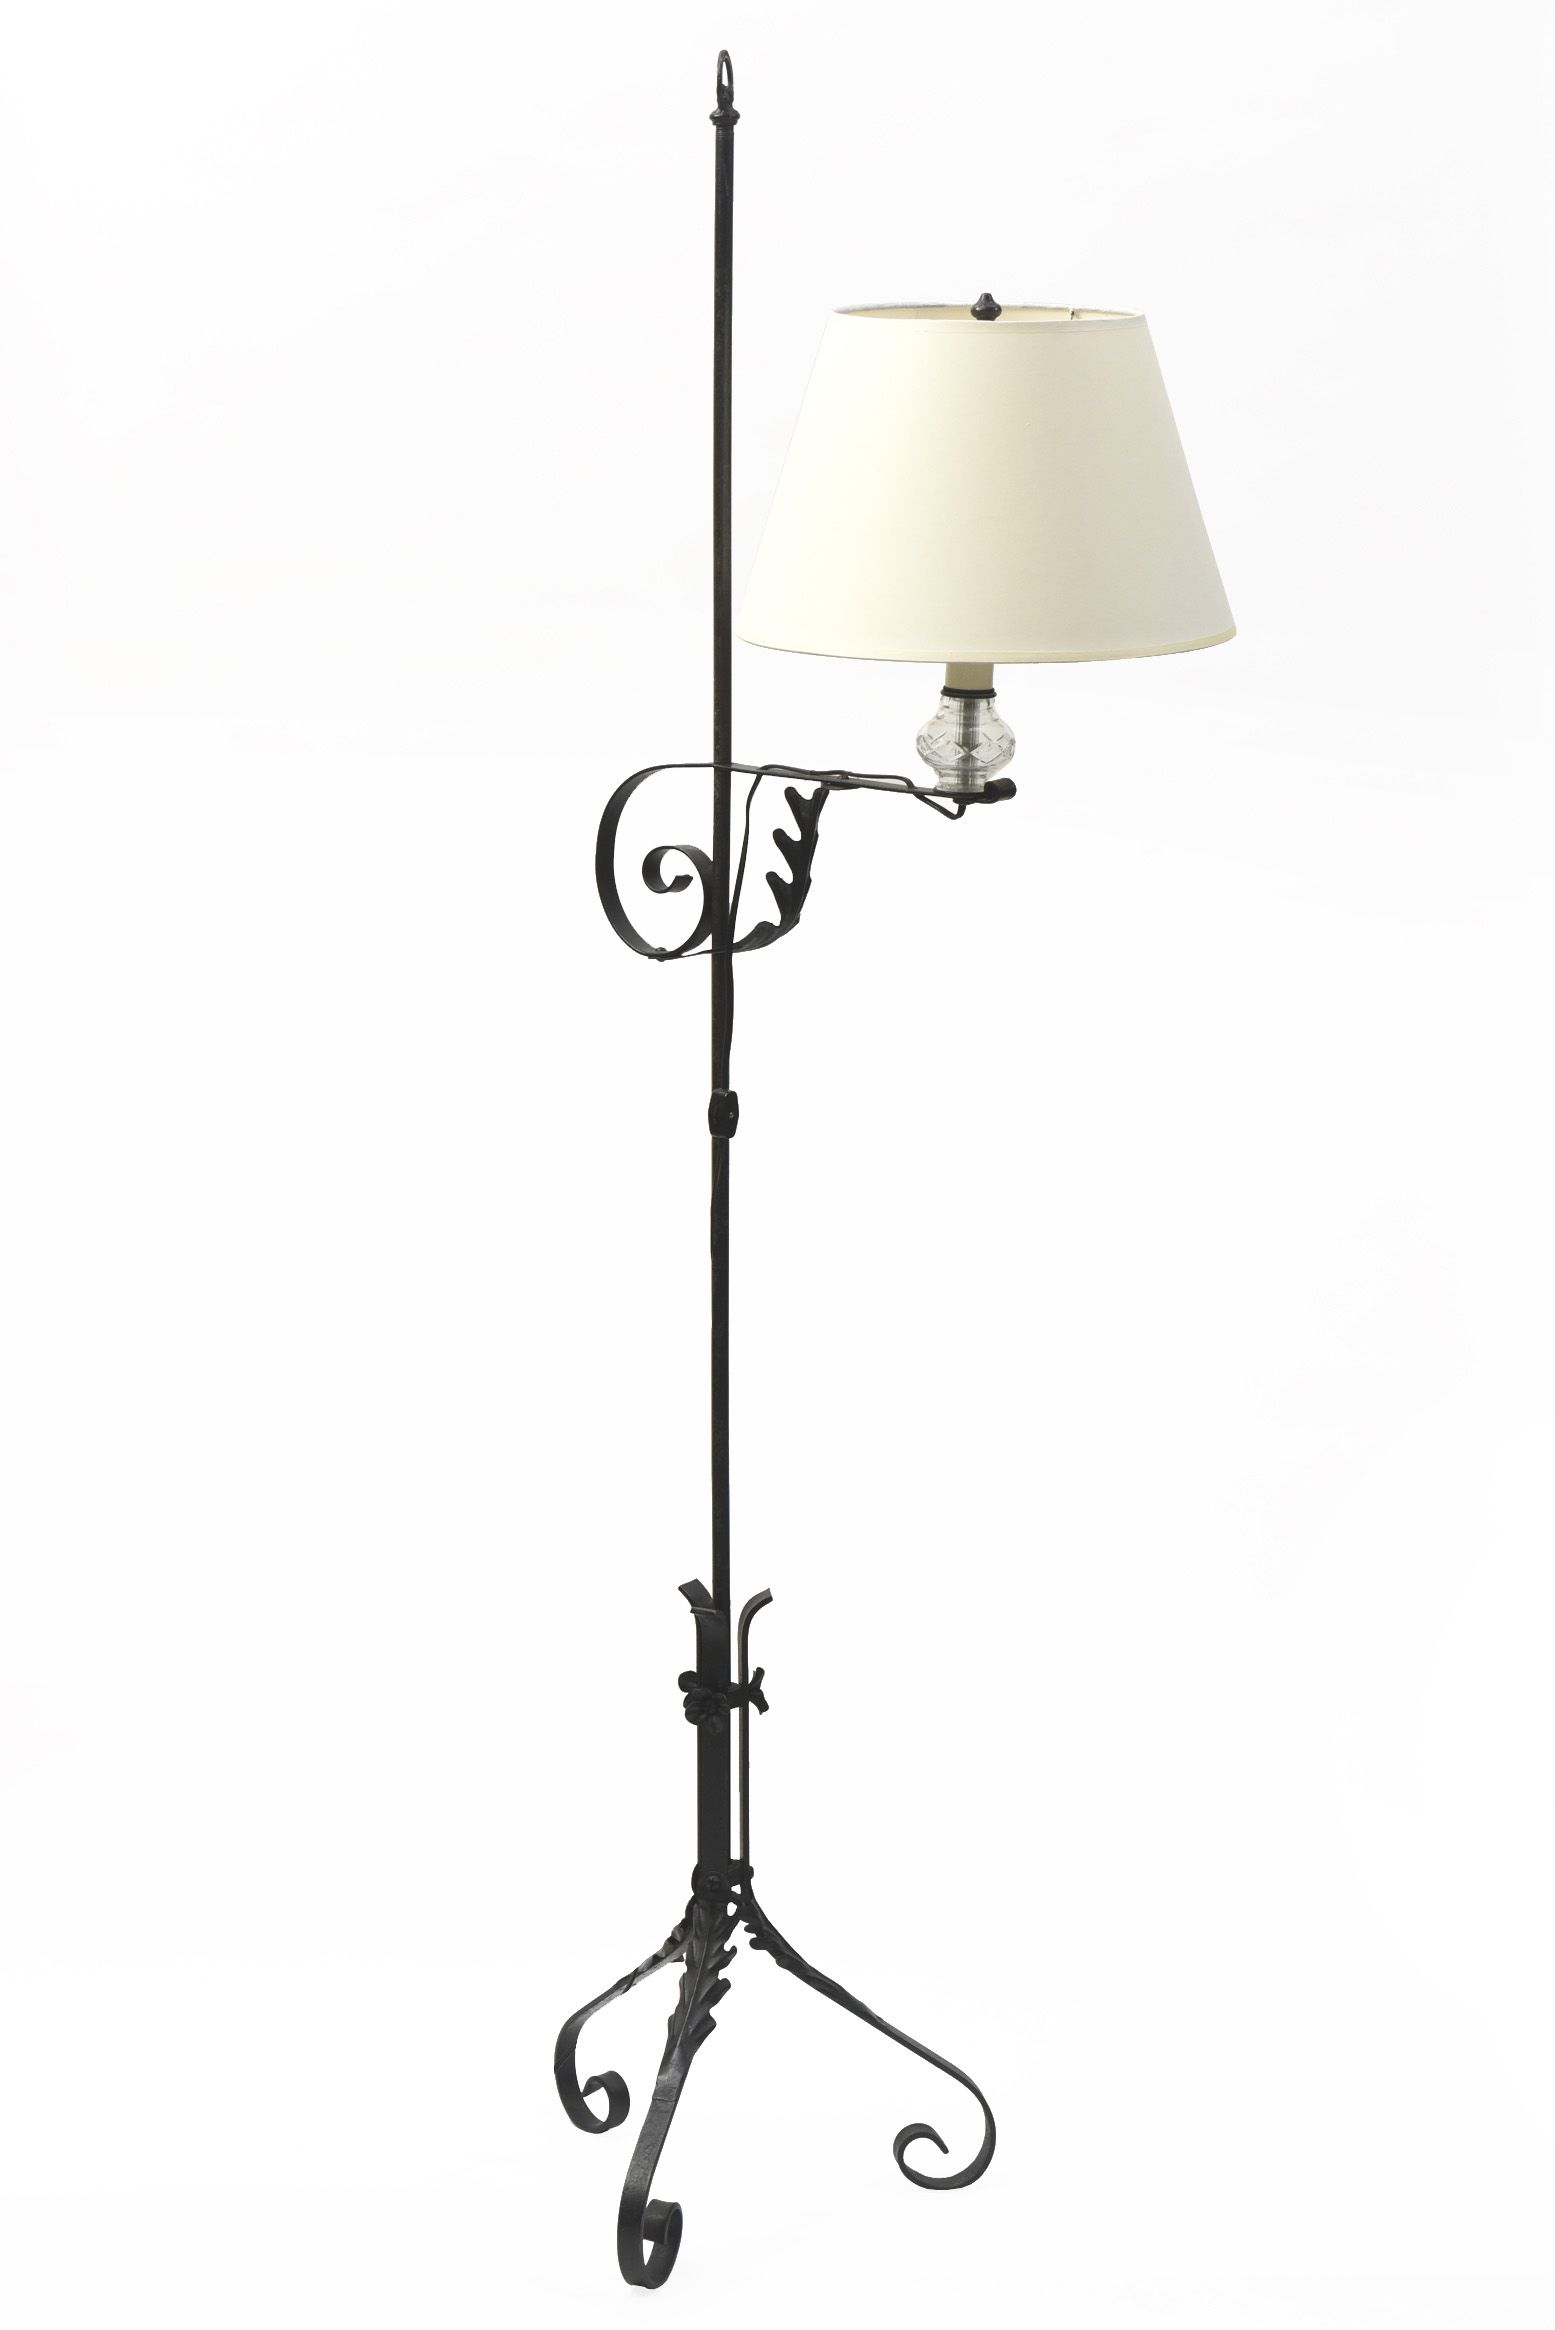 Wrought Iron Colonial Style Bridge Lamp Appleton Antique Lighting Wrought Iron Table Iron Table Rustic Table Lamps